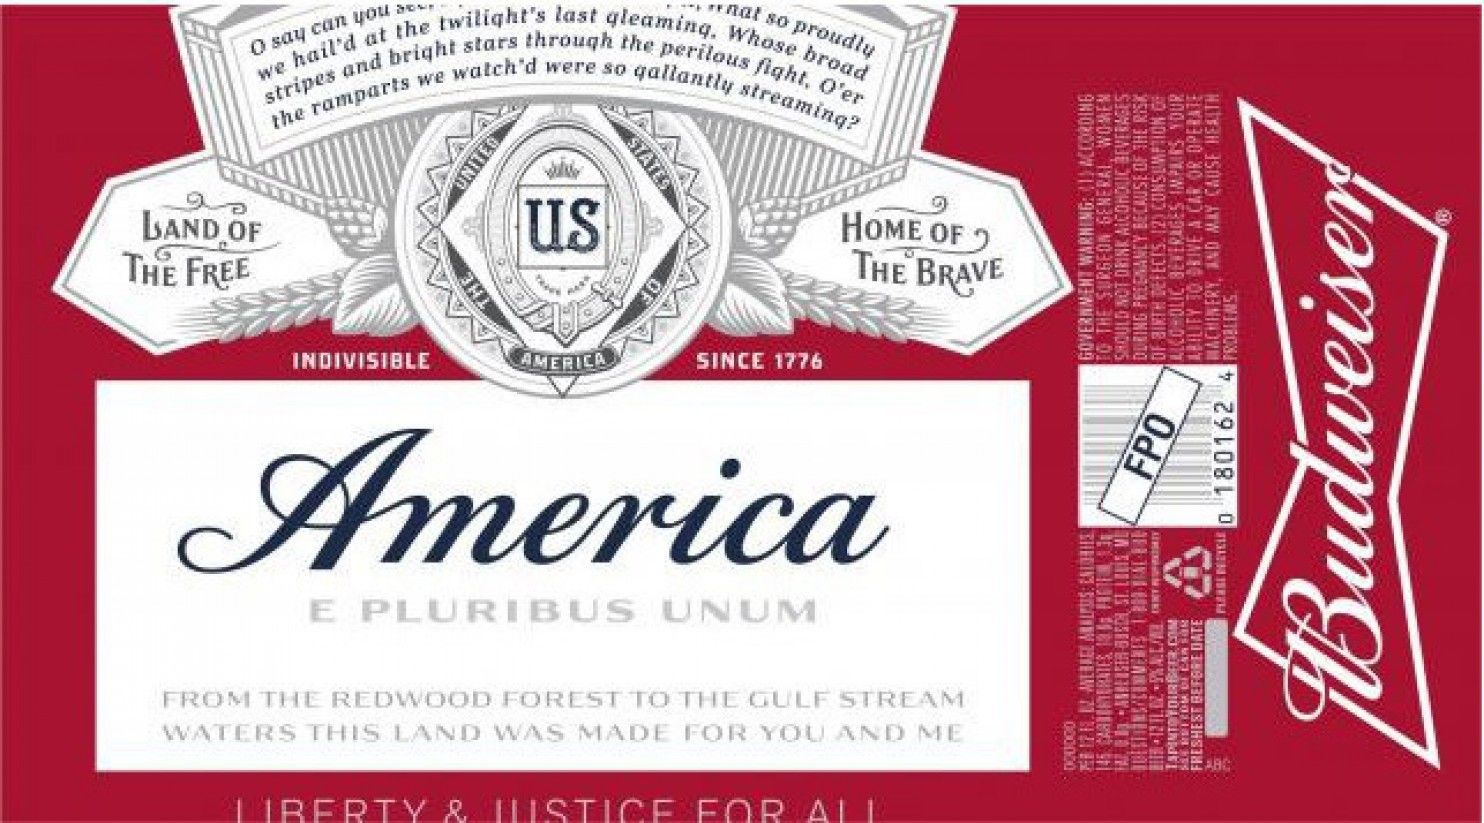 Budweiser seeks approval to be called 'America' this summer - The Washington Post